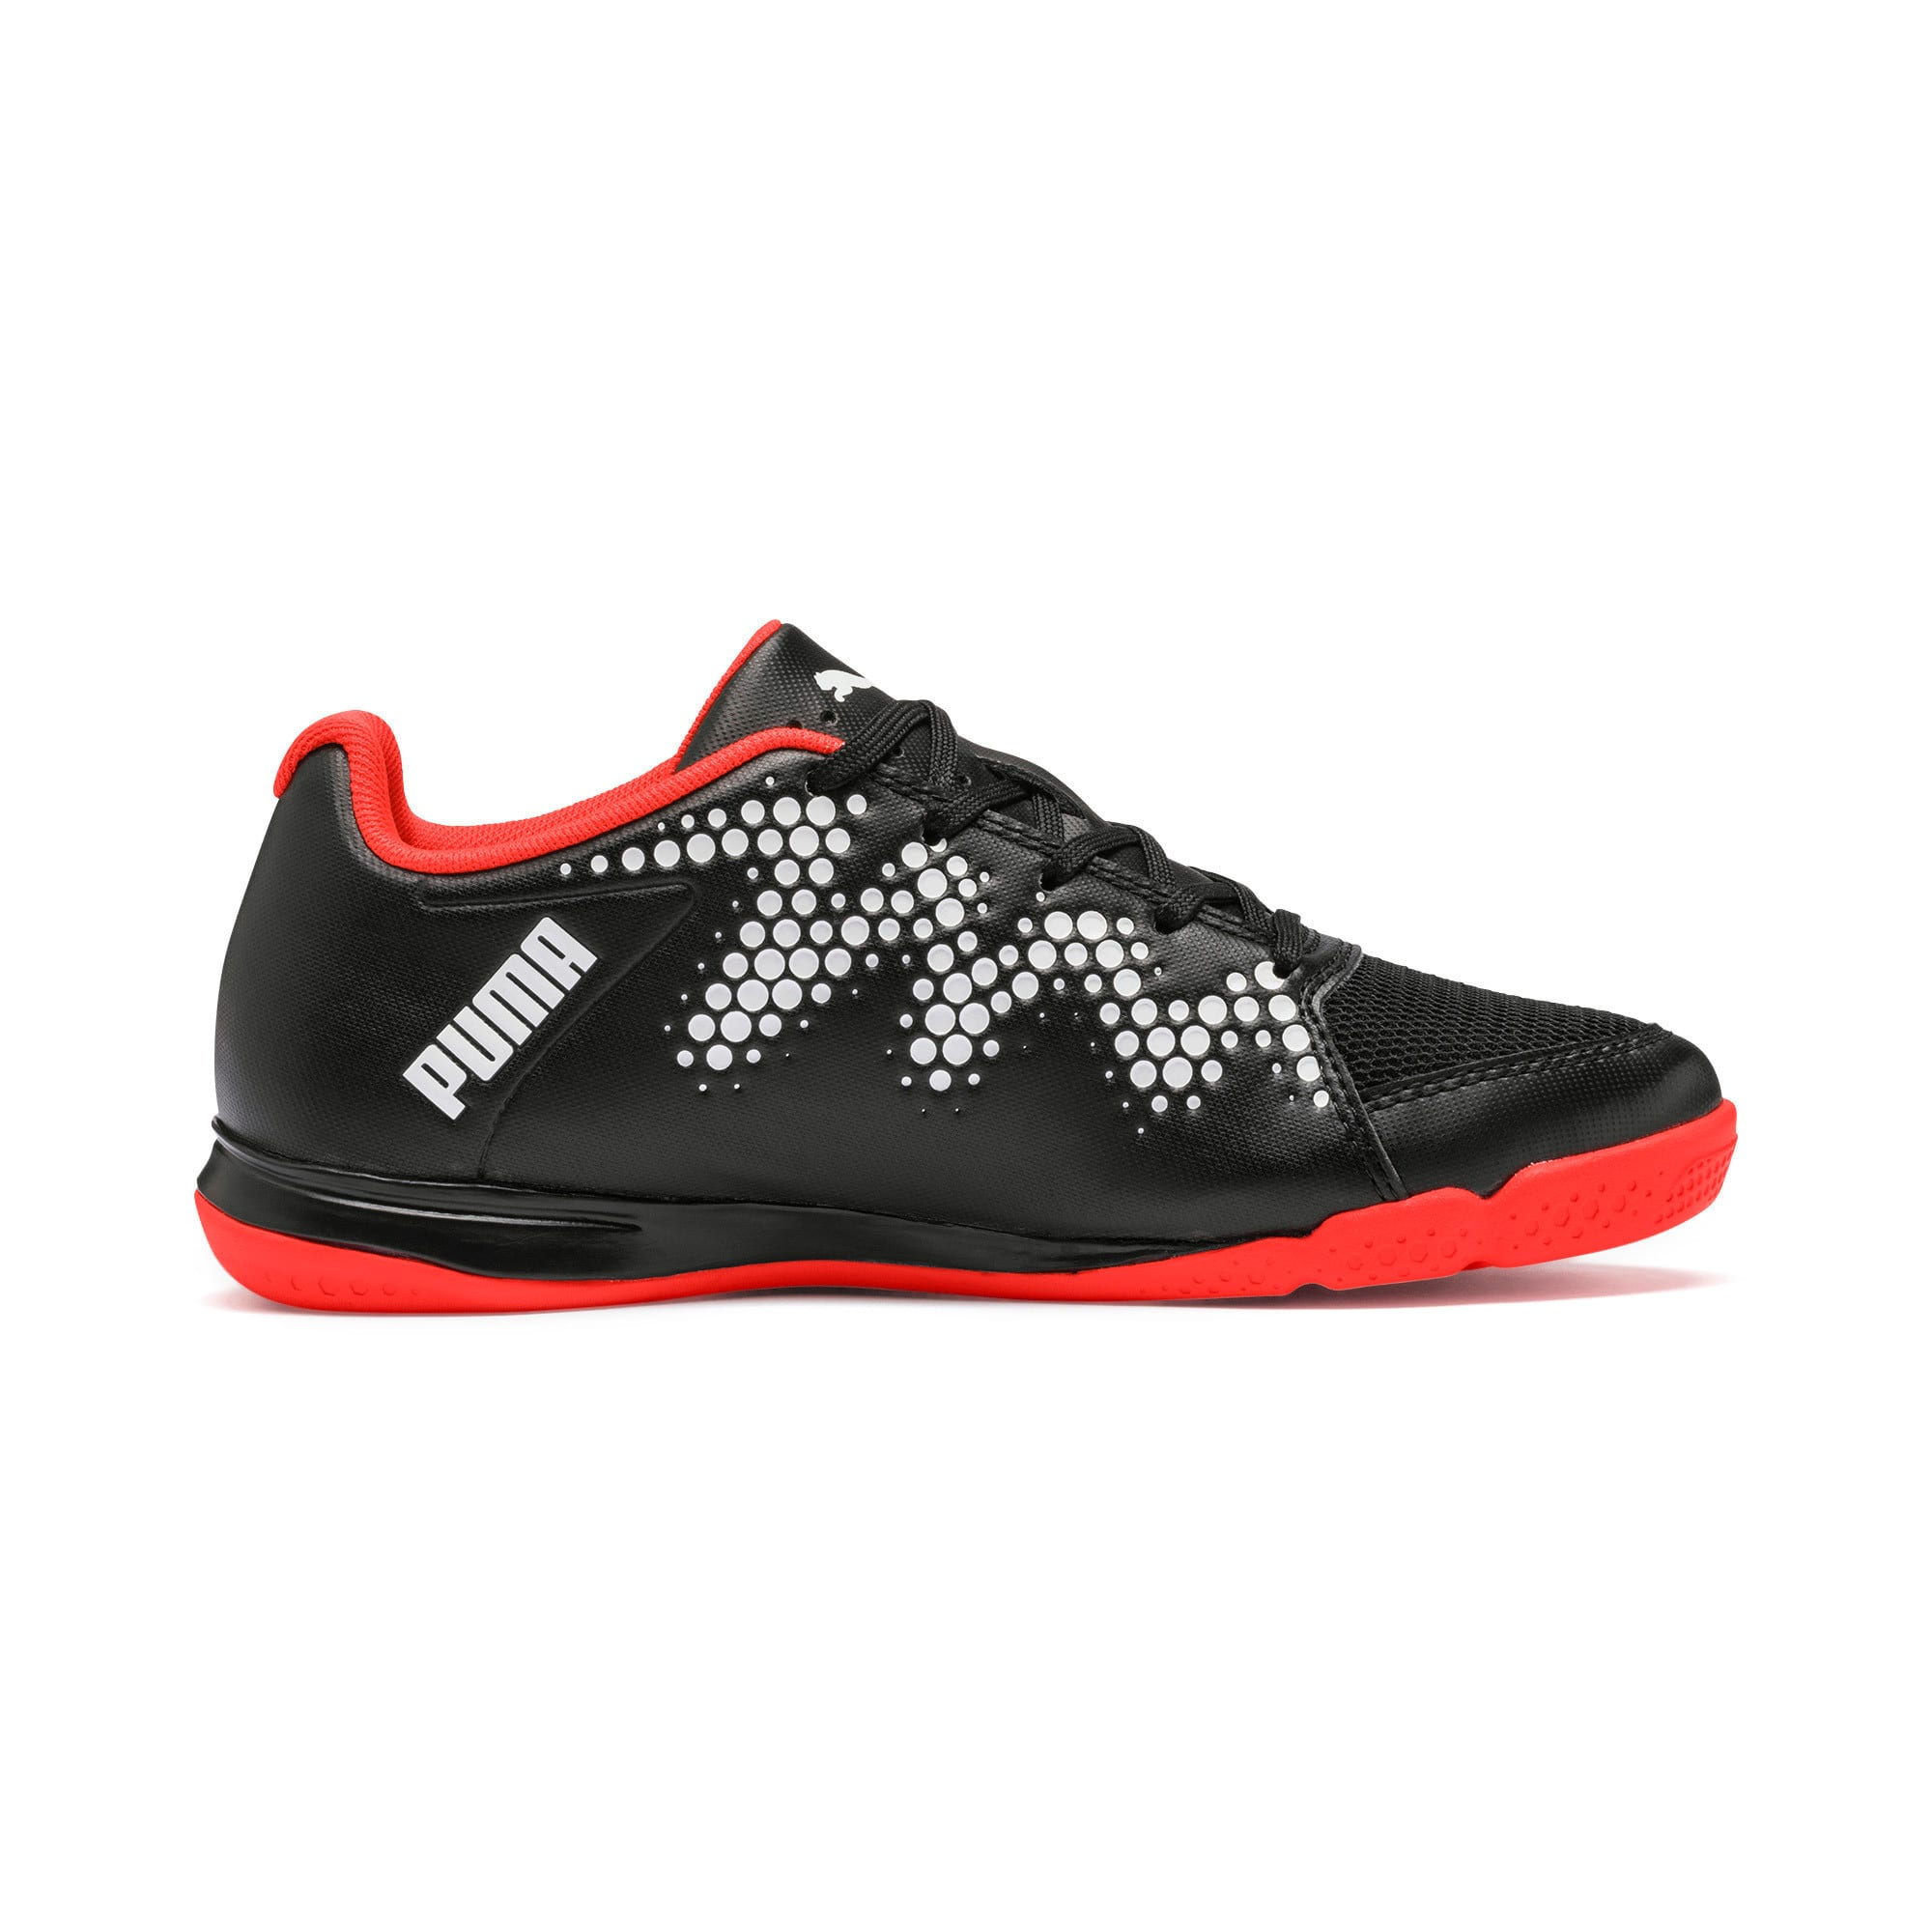 Thumbnail 5 of Sharp XT 2 Youth Trainers, Black-Puma White-Nrgy Red, medium-IND